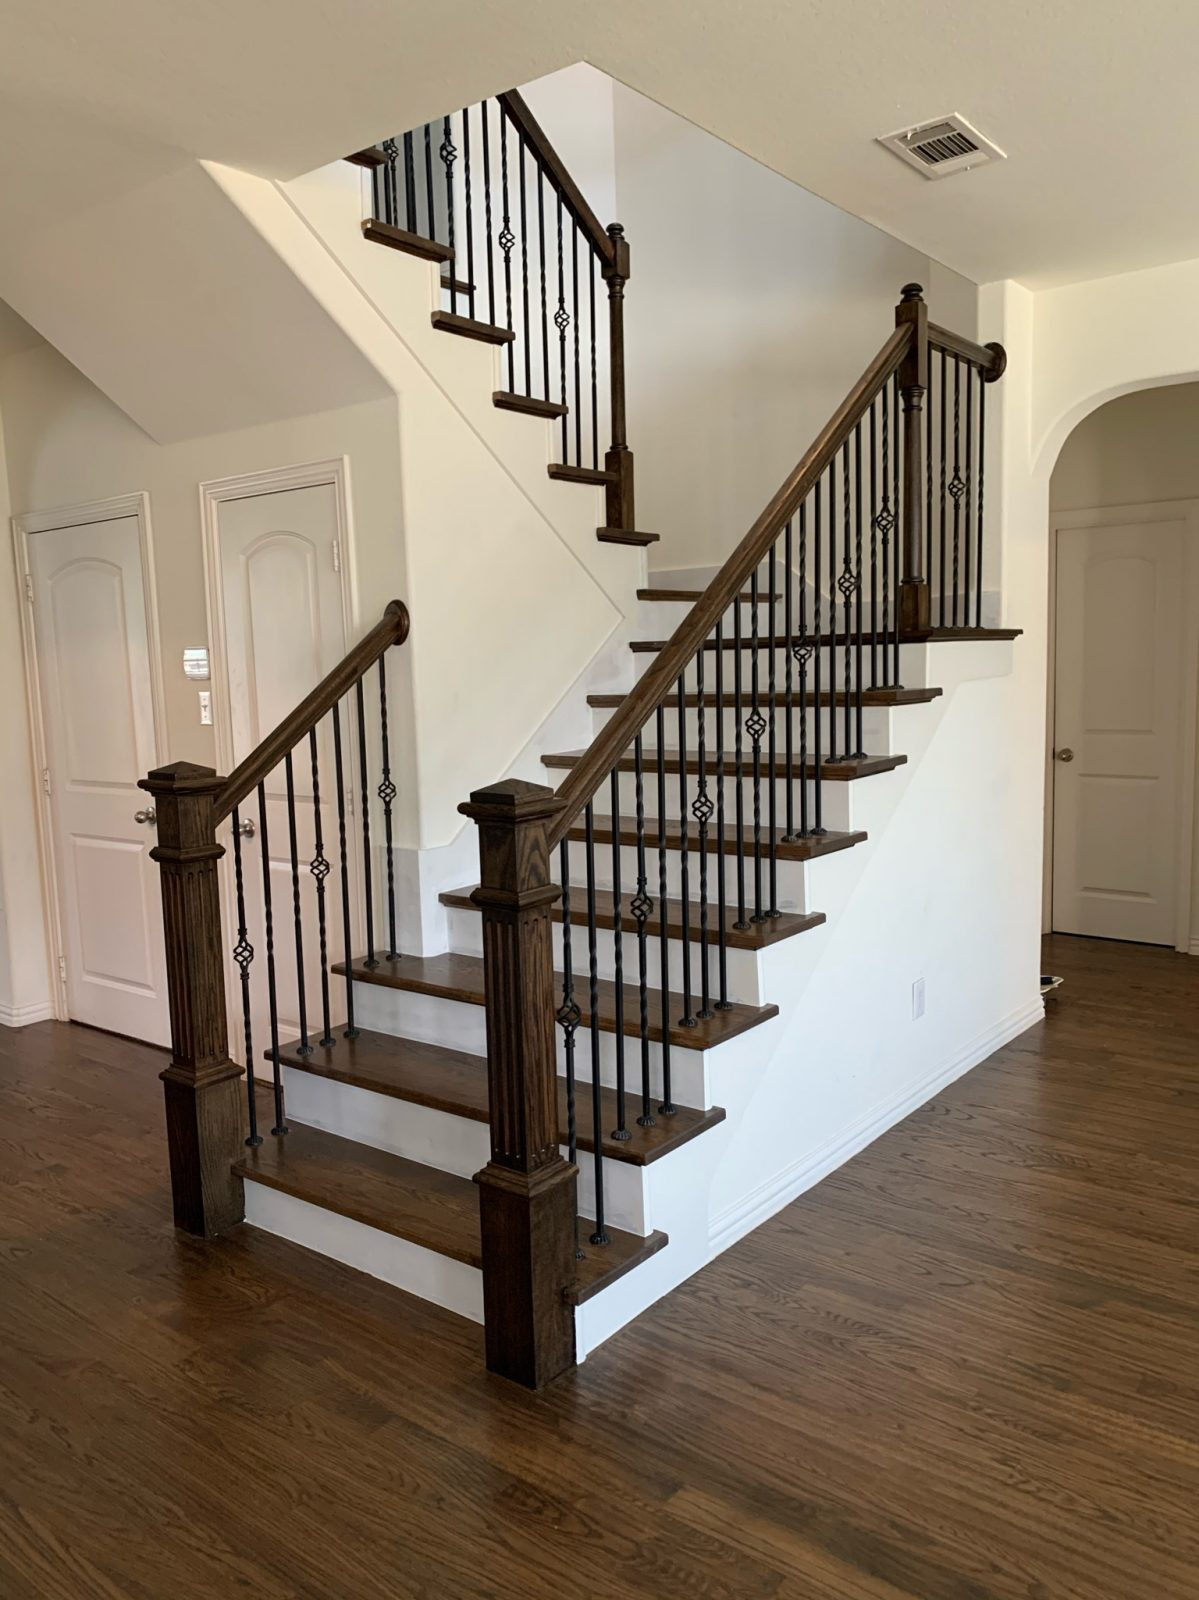 New Red Oak Floors & Staircase stained with classic grey and antique brown mix